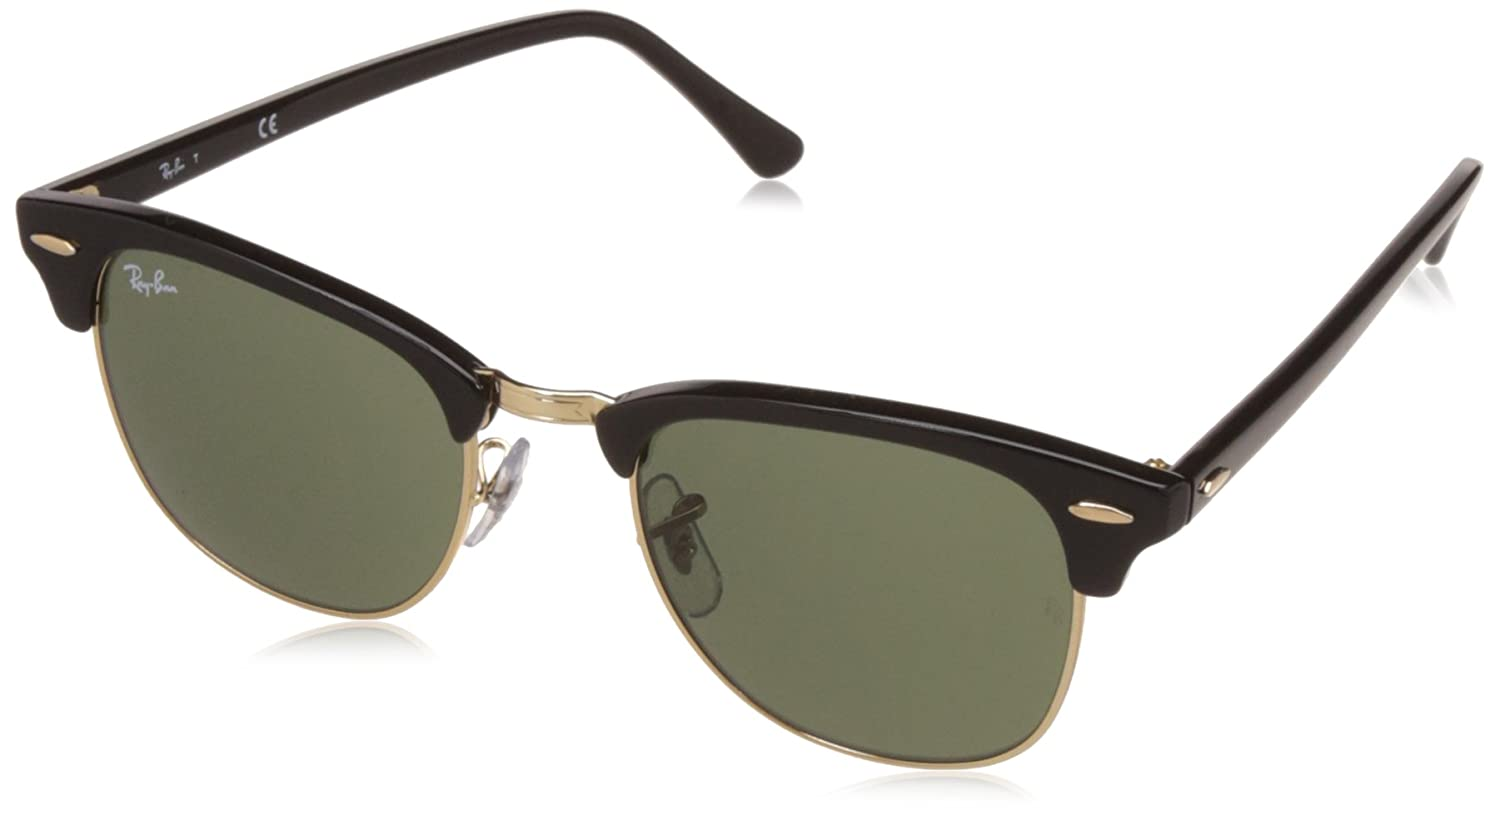 Amazon.com: Ray-Ban CLUBMASTER - EBONY/ ARISTA Frame CRYSTAL GREEN ...